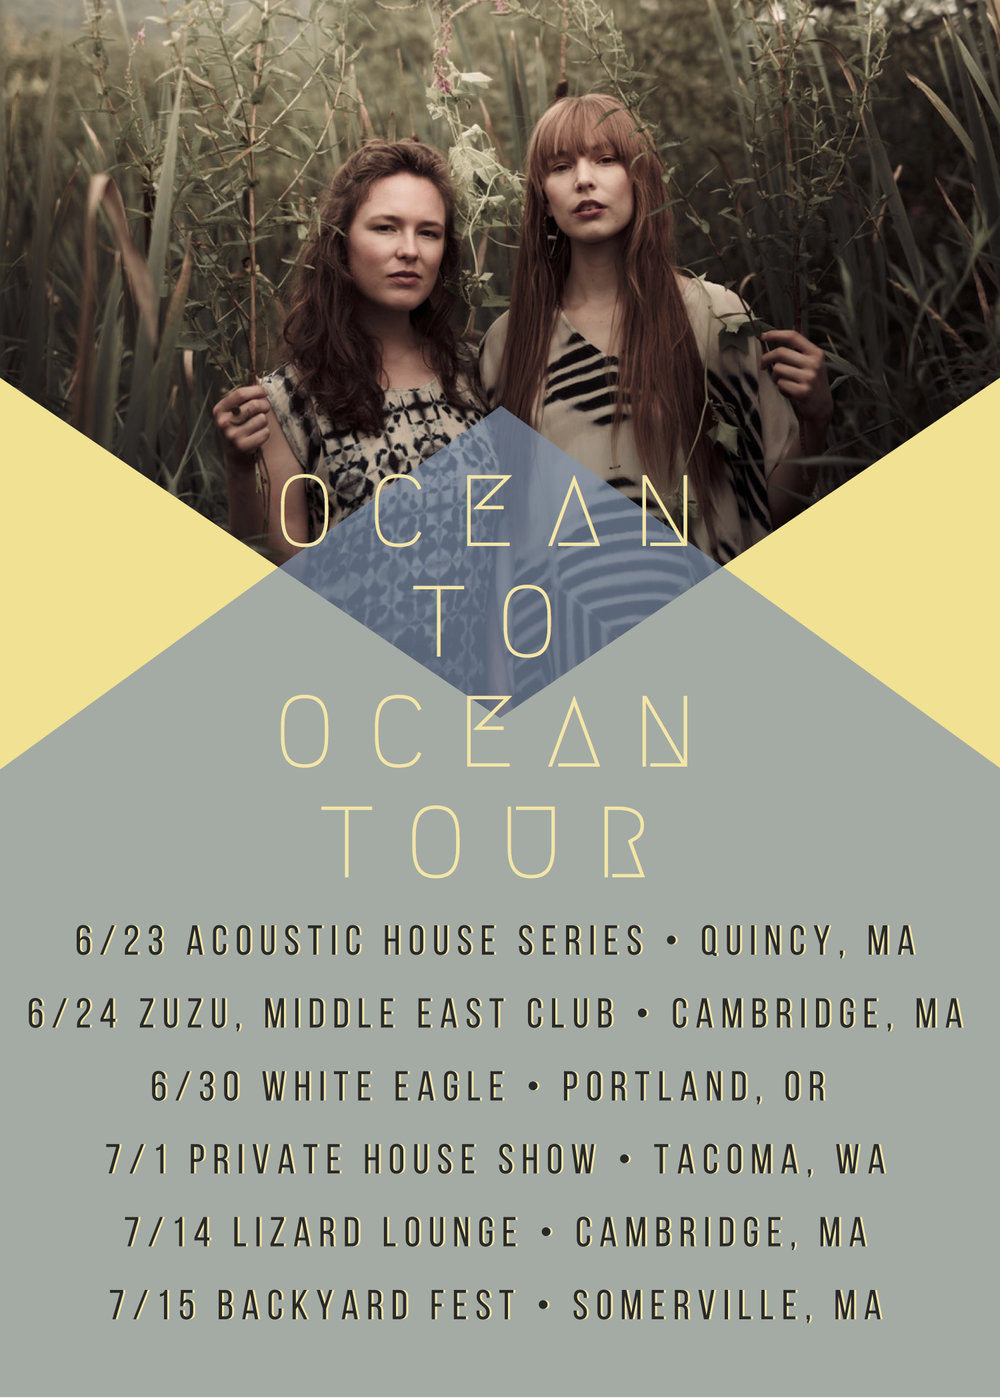 Ocean to Ocean Summer tour jpg.jpg